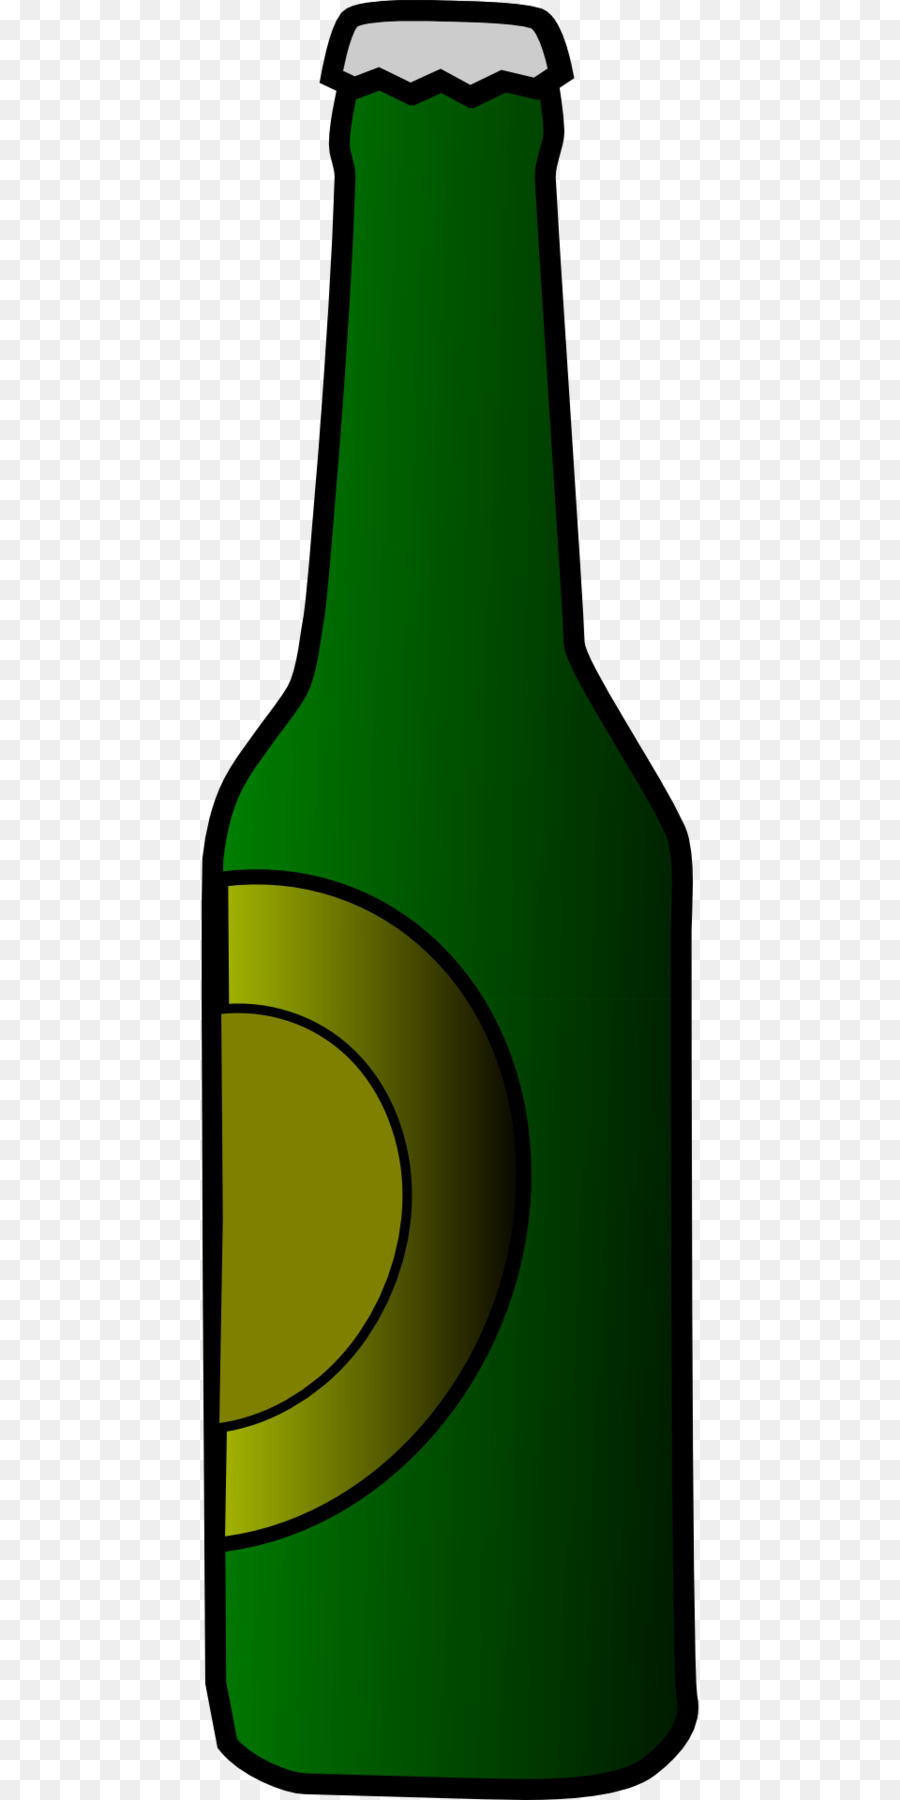 beer bottle clip art jiangnan is drunk png download 960 1920 rh kisspng com bottle clipart vector clipart bottle of wine